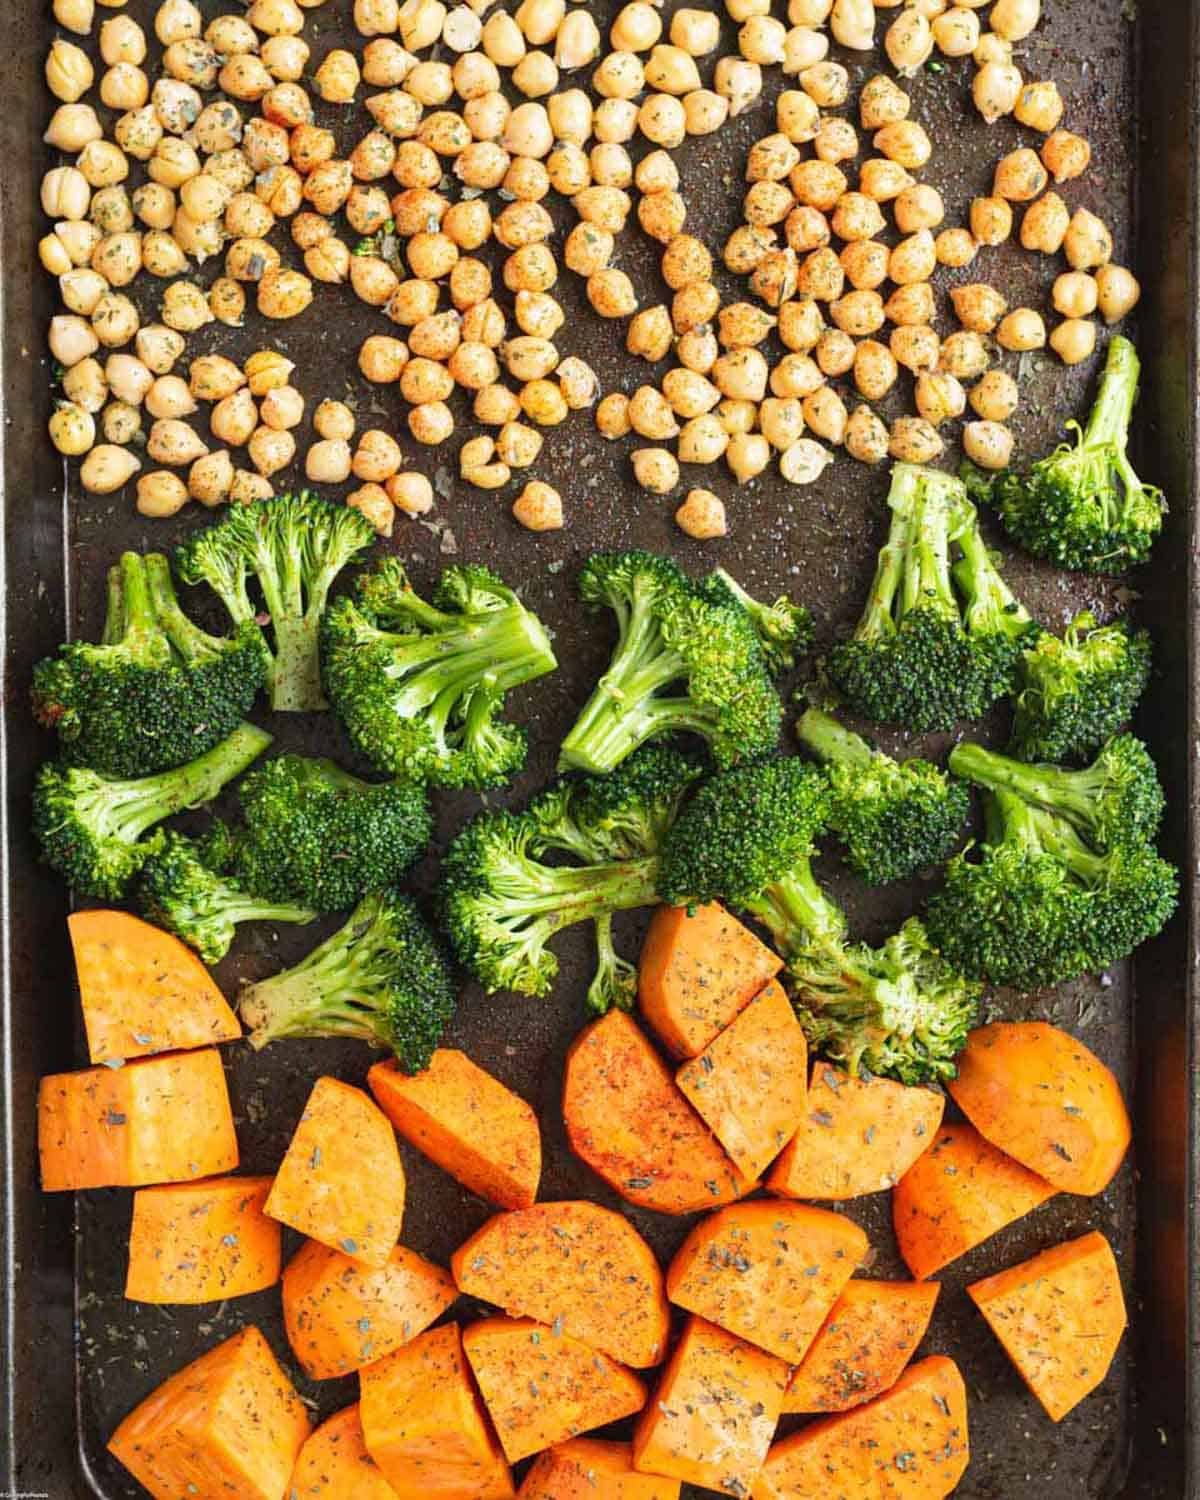 Baking sheet with roasted veggies and chickpeas.